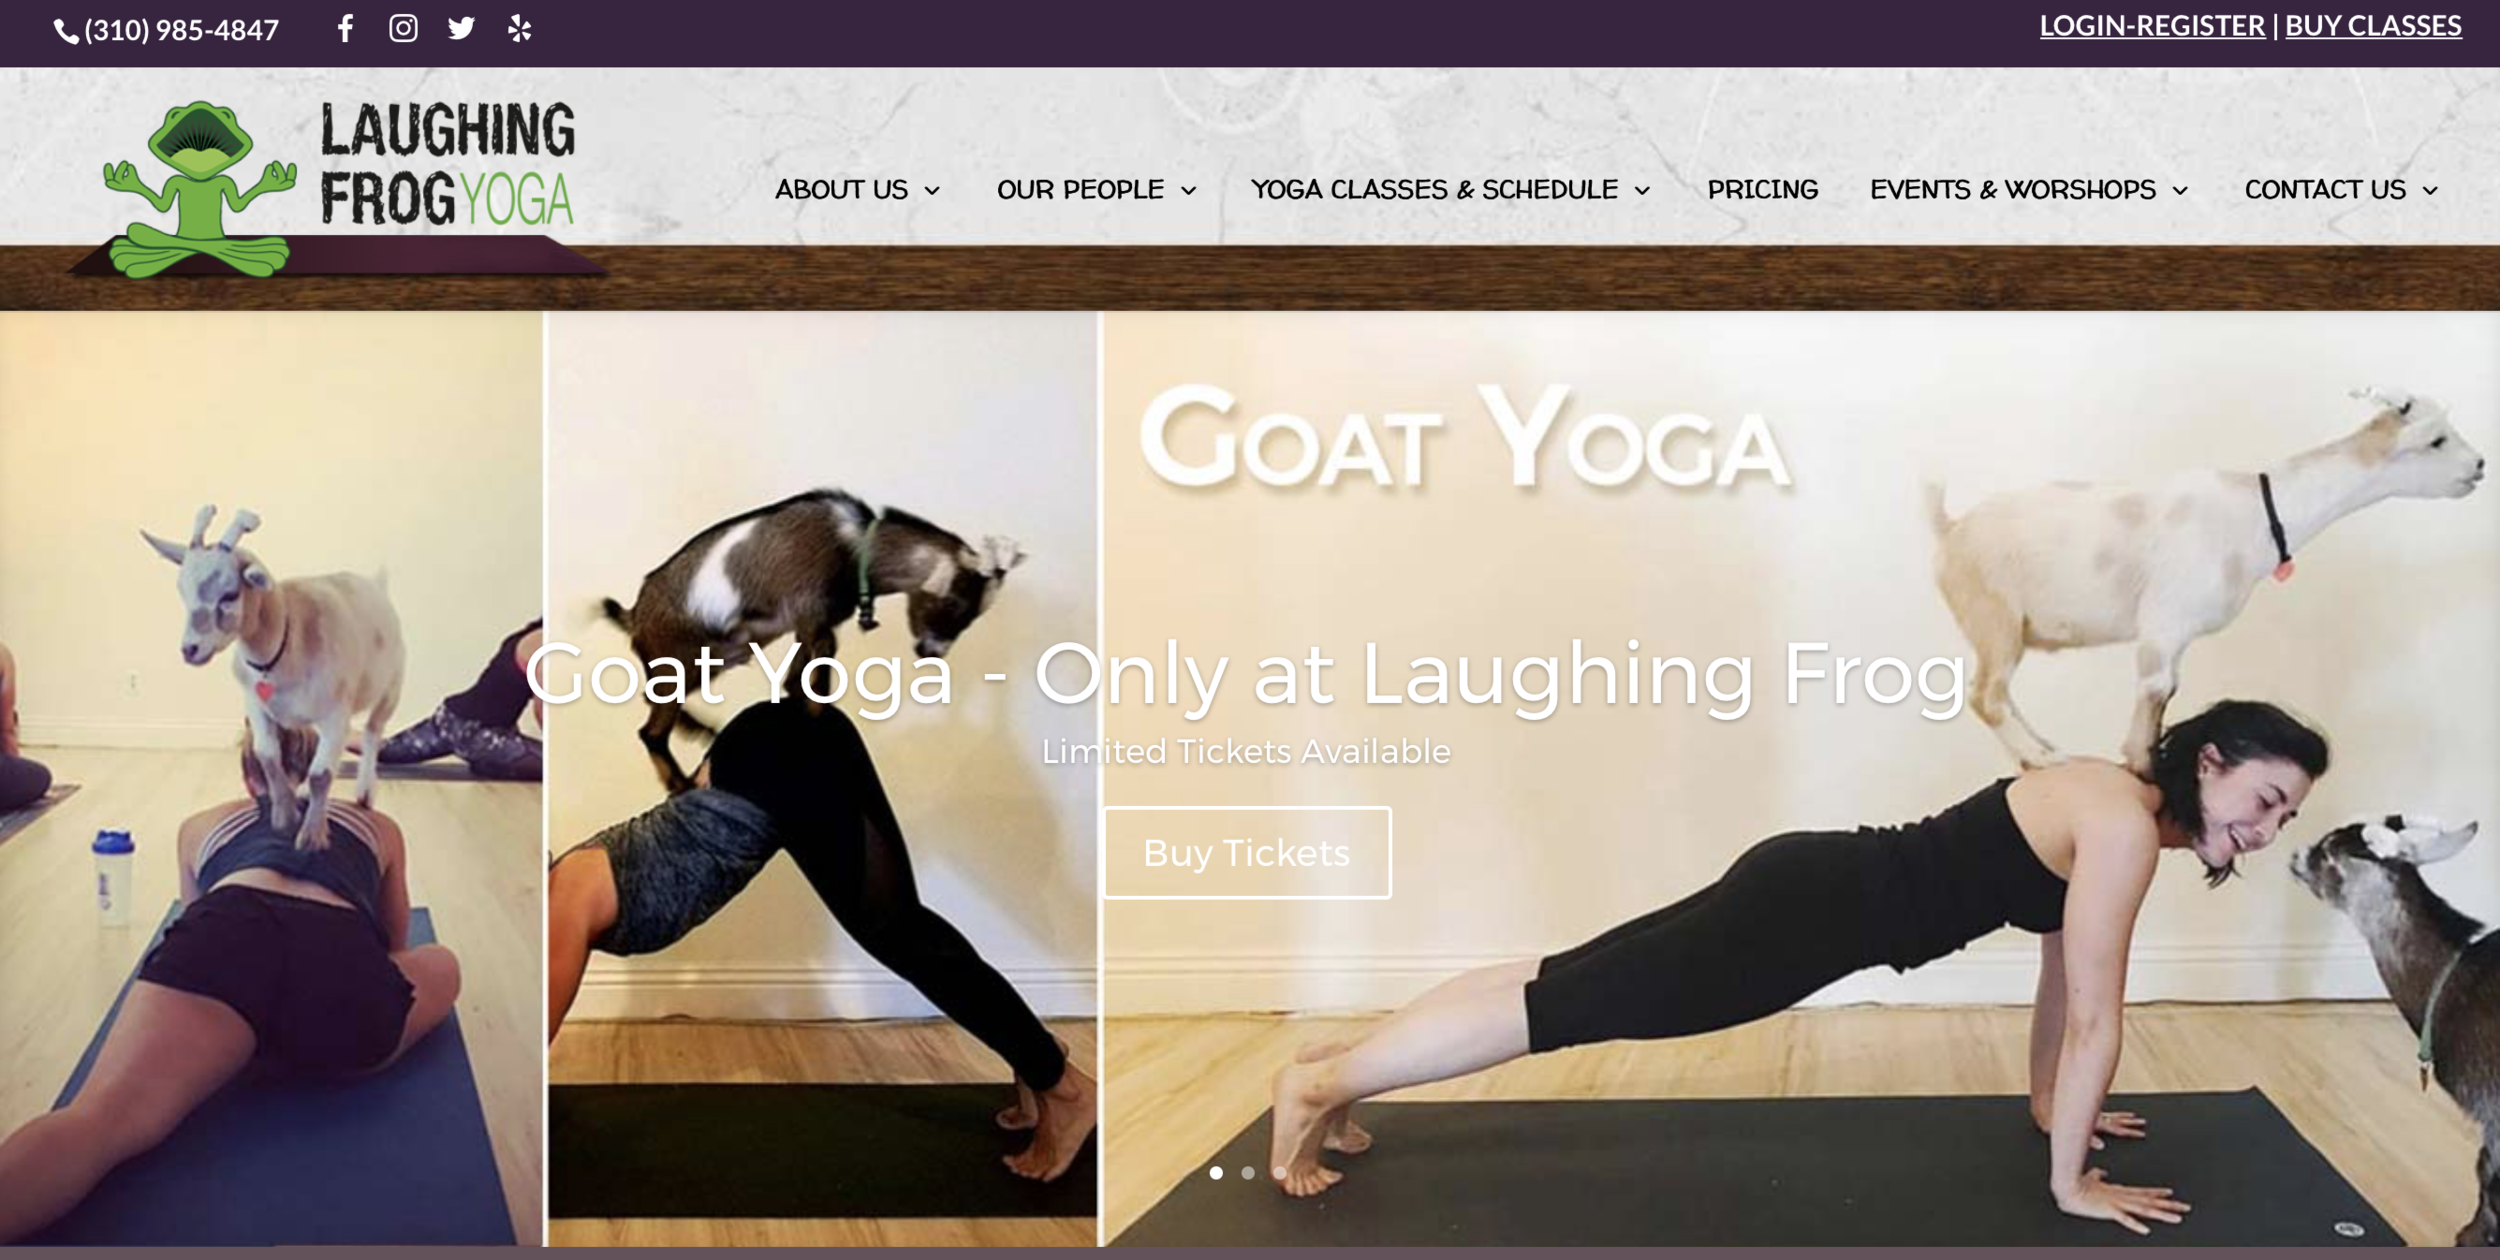 LAUGHING FROG YOGA - BRENTWOOD, CALIFORNIA